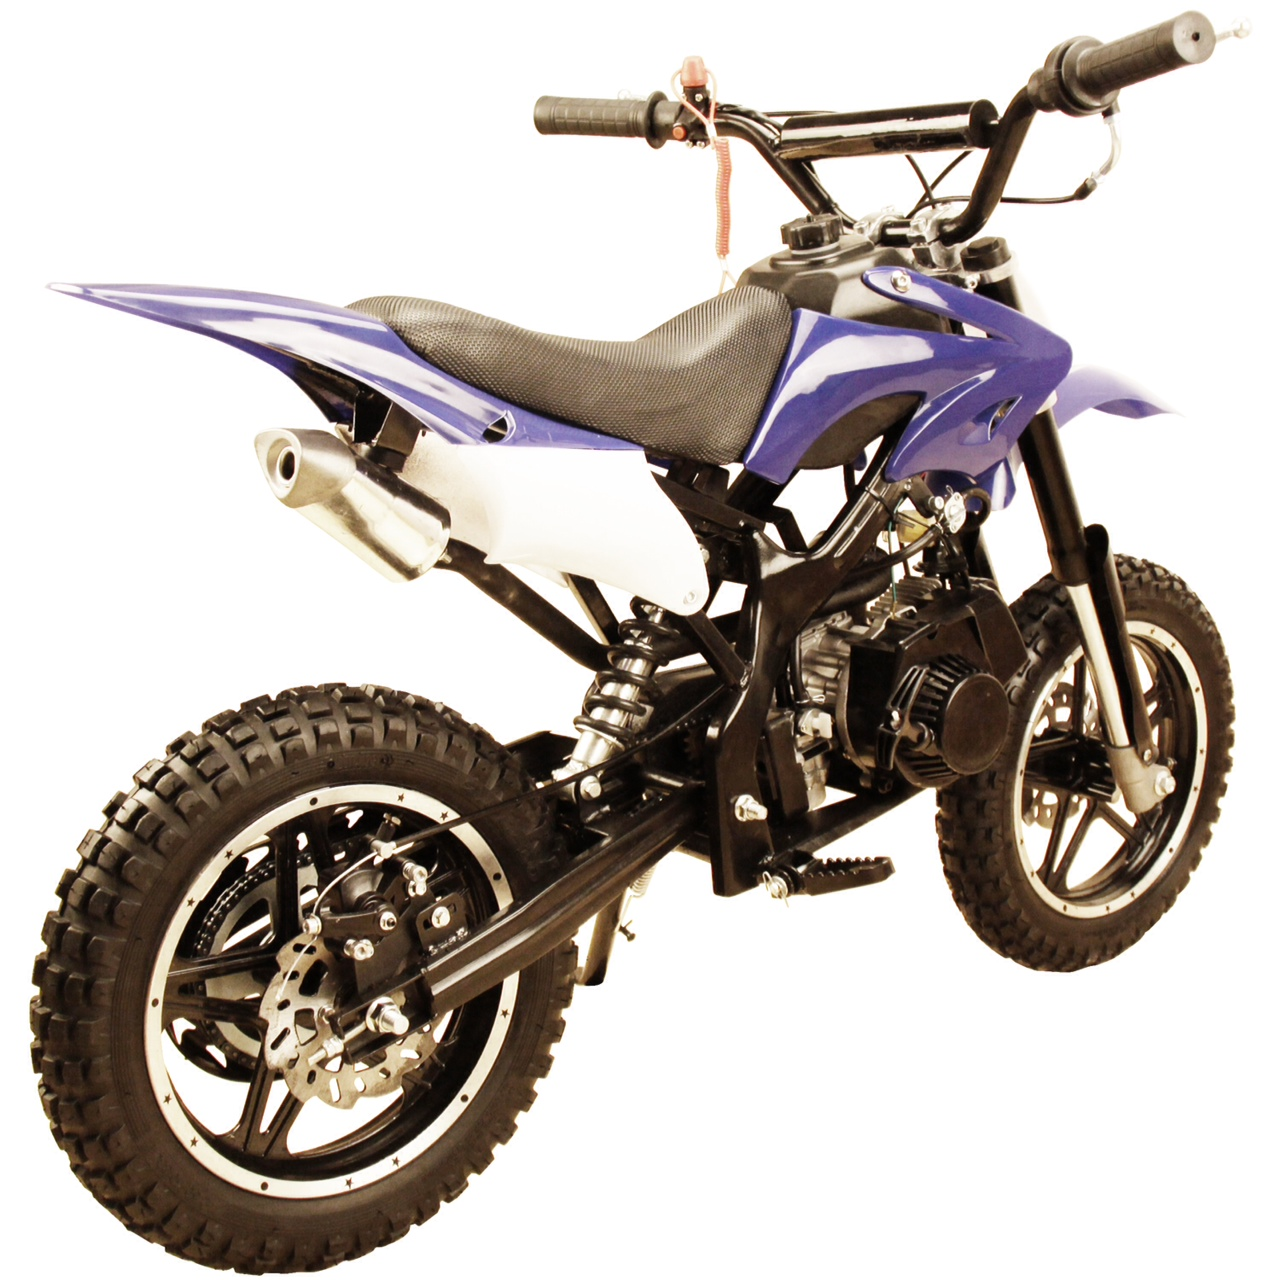 jet moto ultra mini dirt bike speed limiter disc brakes. Black Bedroom Furniture Sets. Home Design Ideas